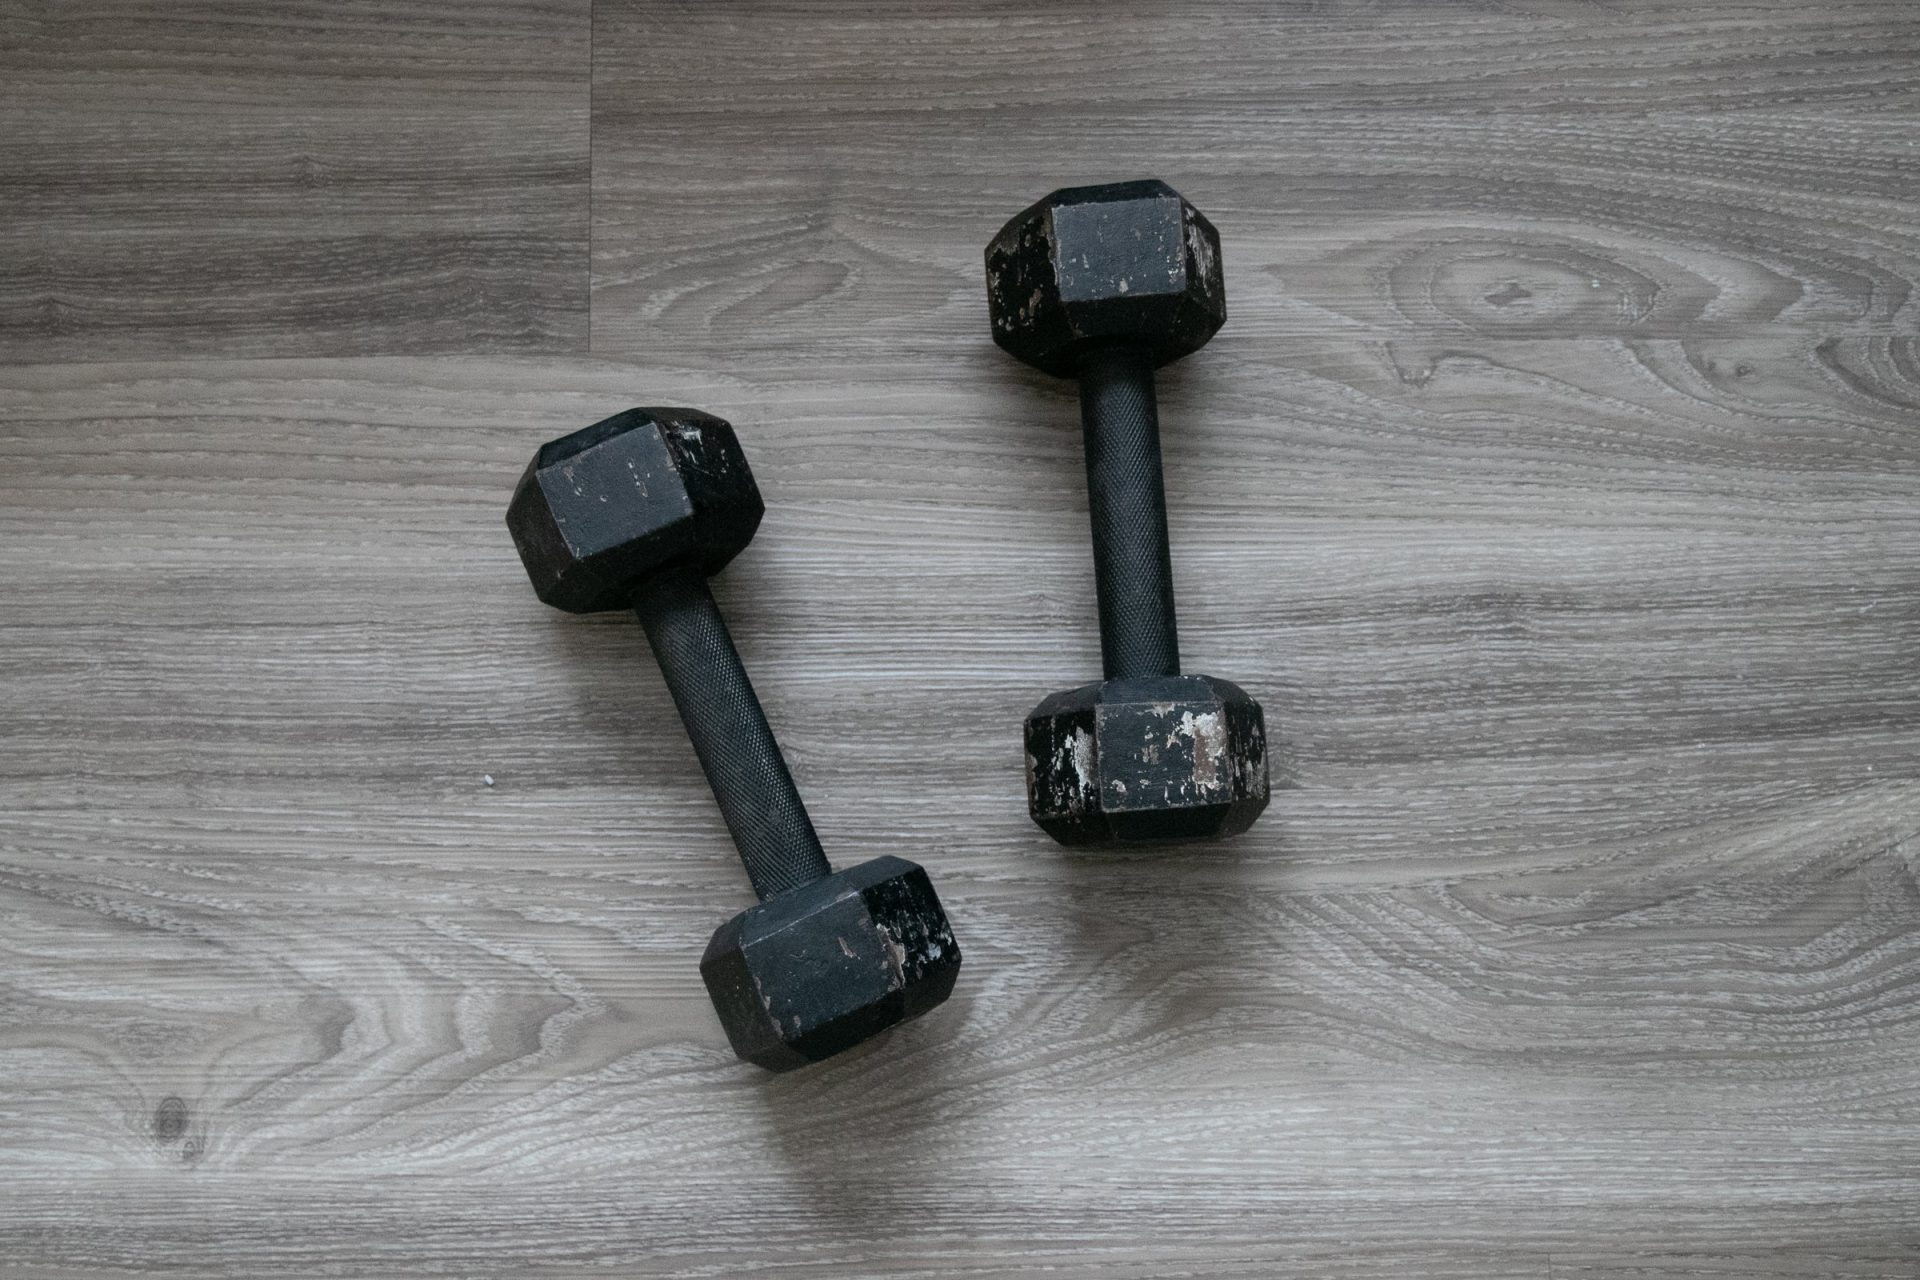 Cast Iron Dumbbells On Wooden Surface